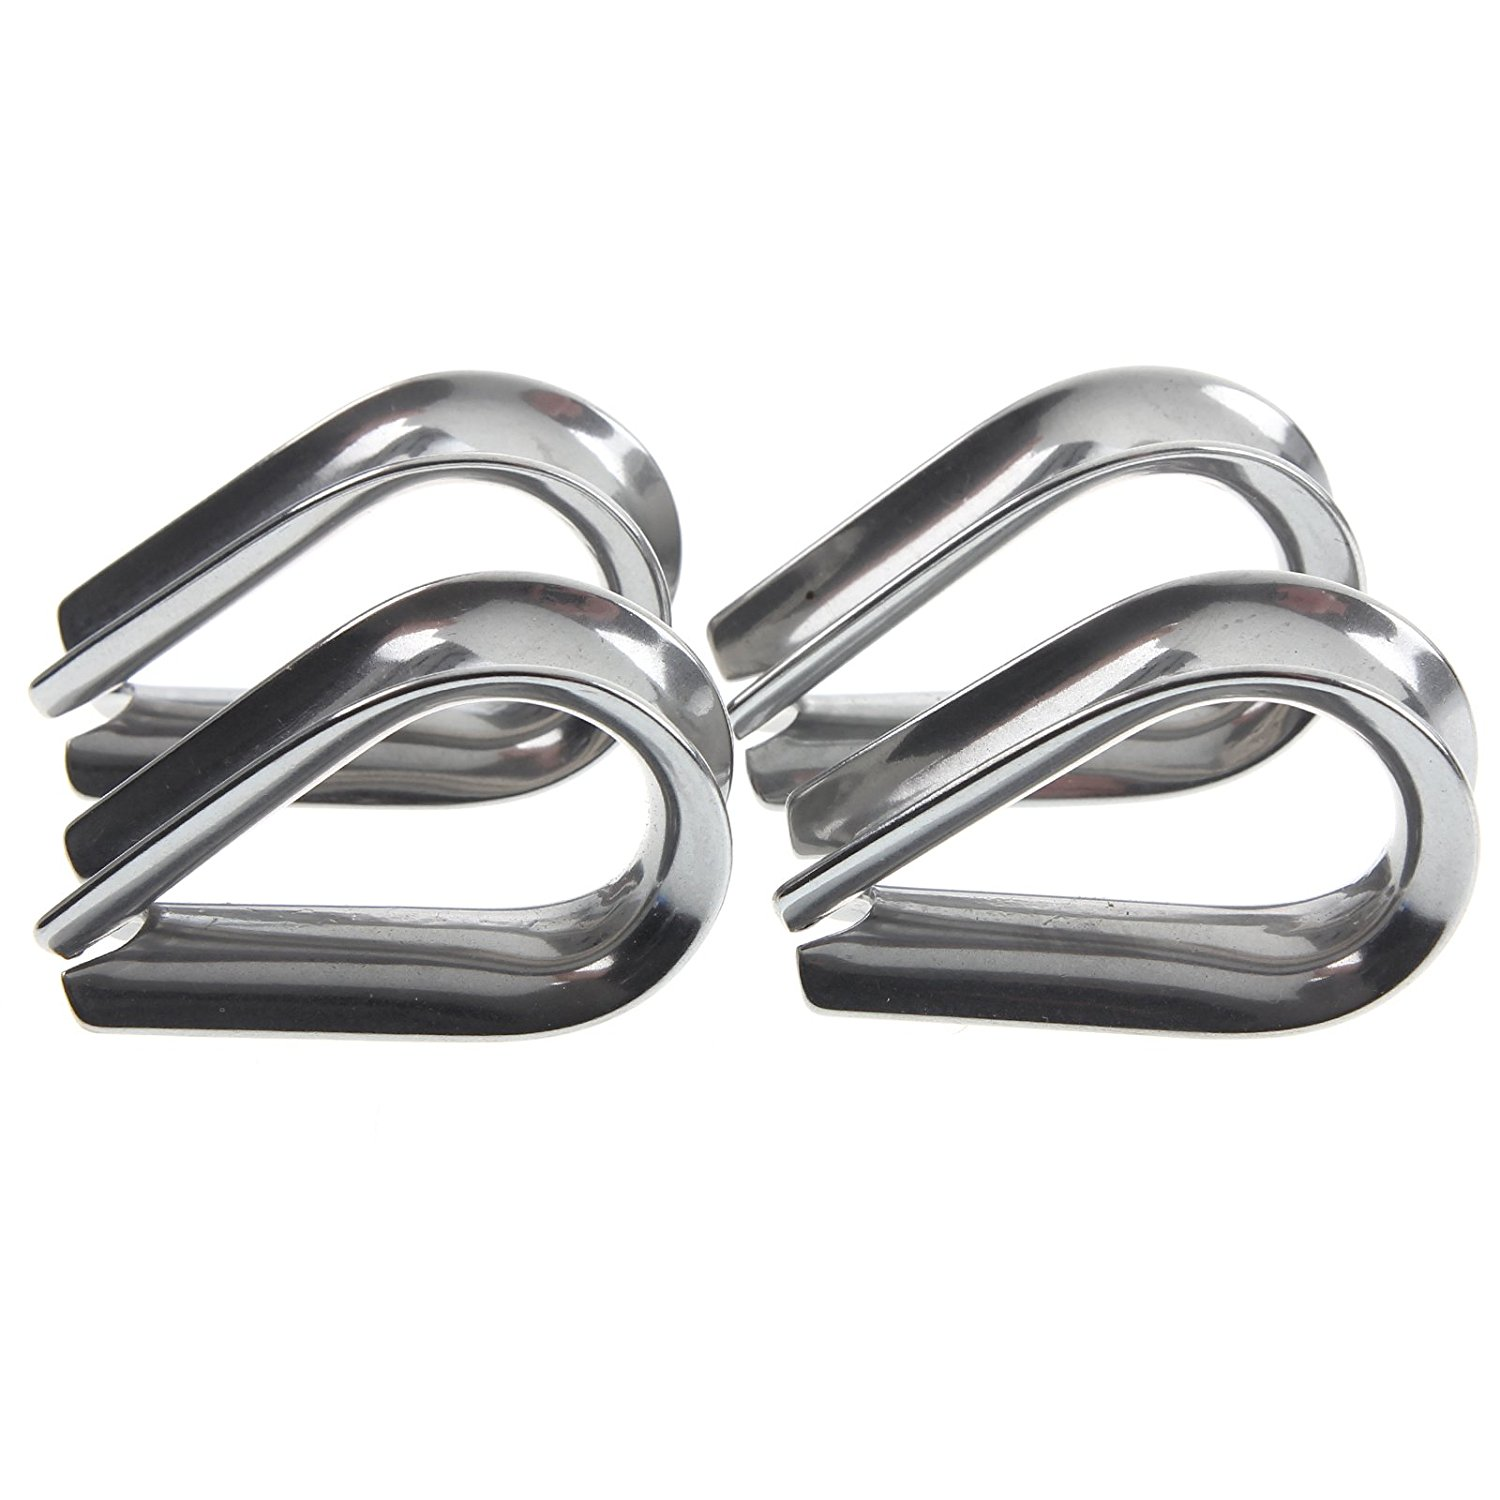 BMBY 4 X Stainless Steel - 3mm Wire Rope Loop Rope Thimbles